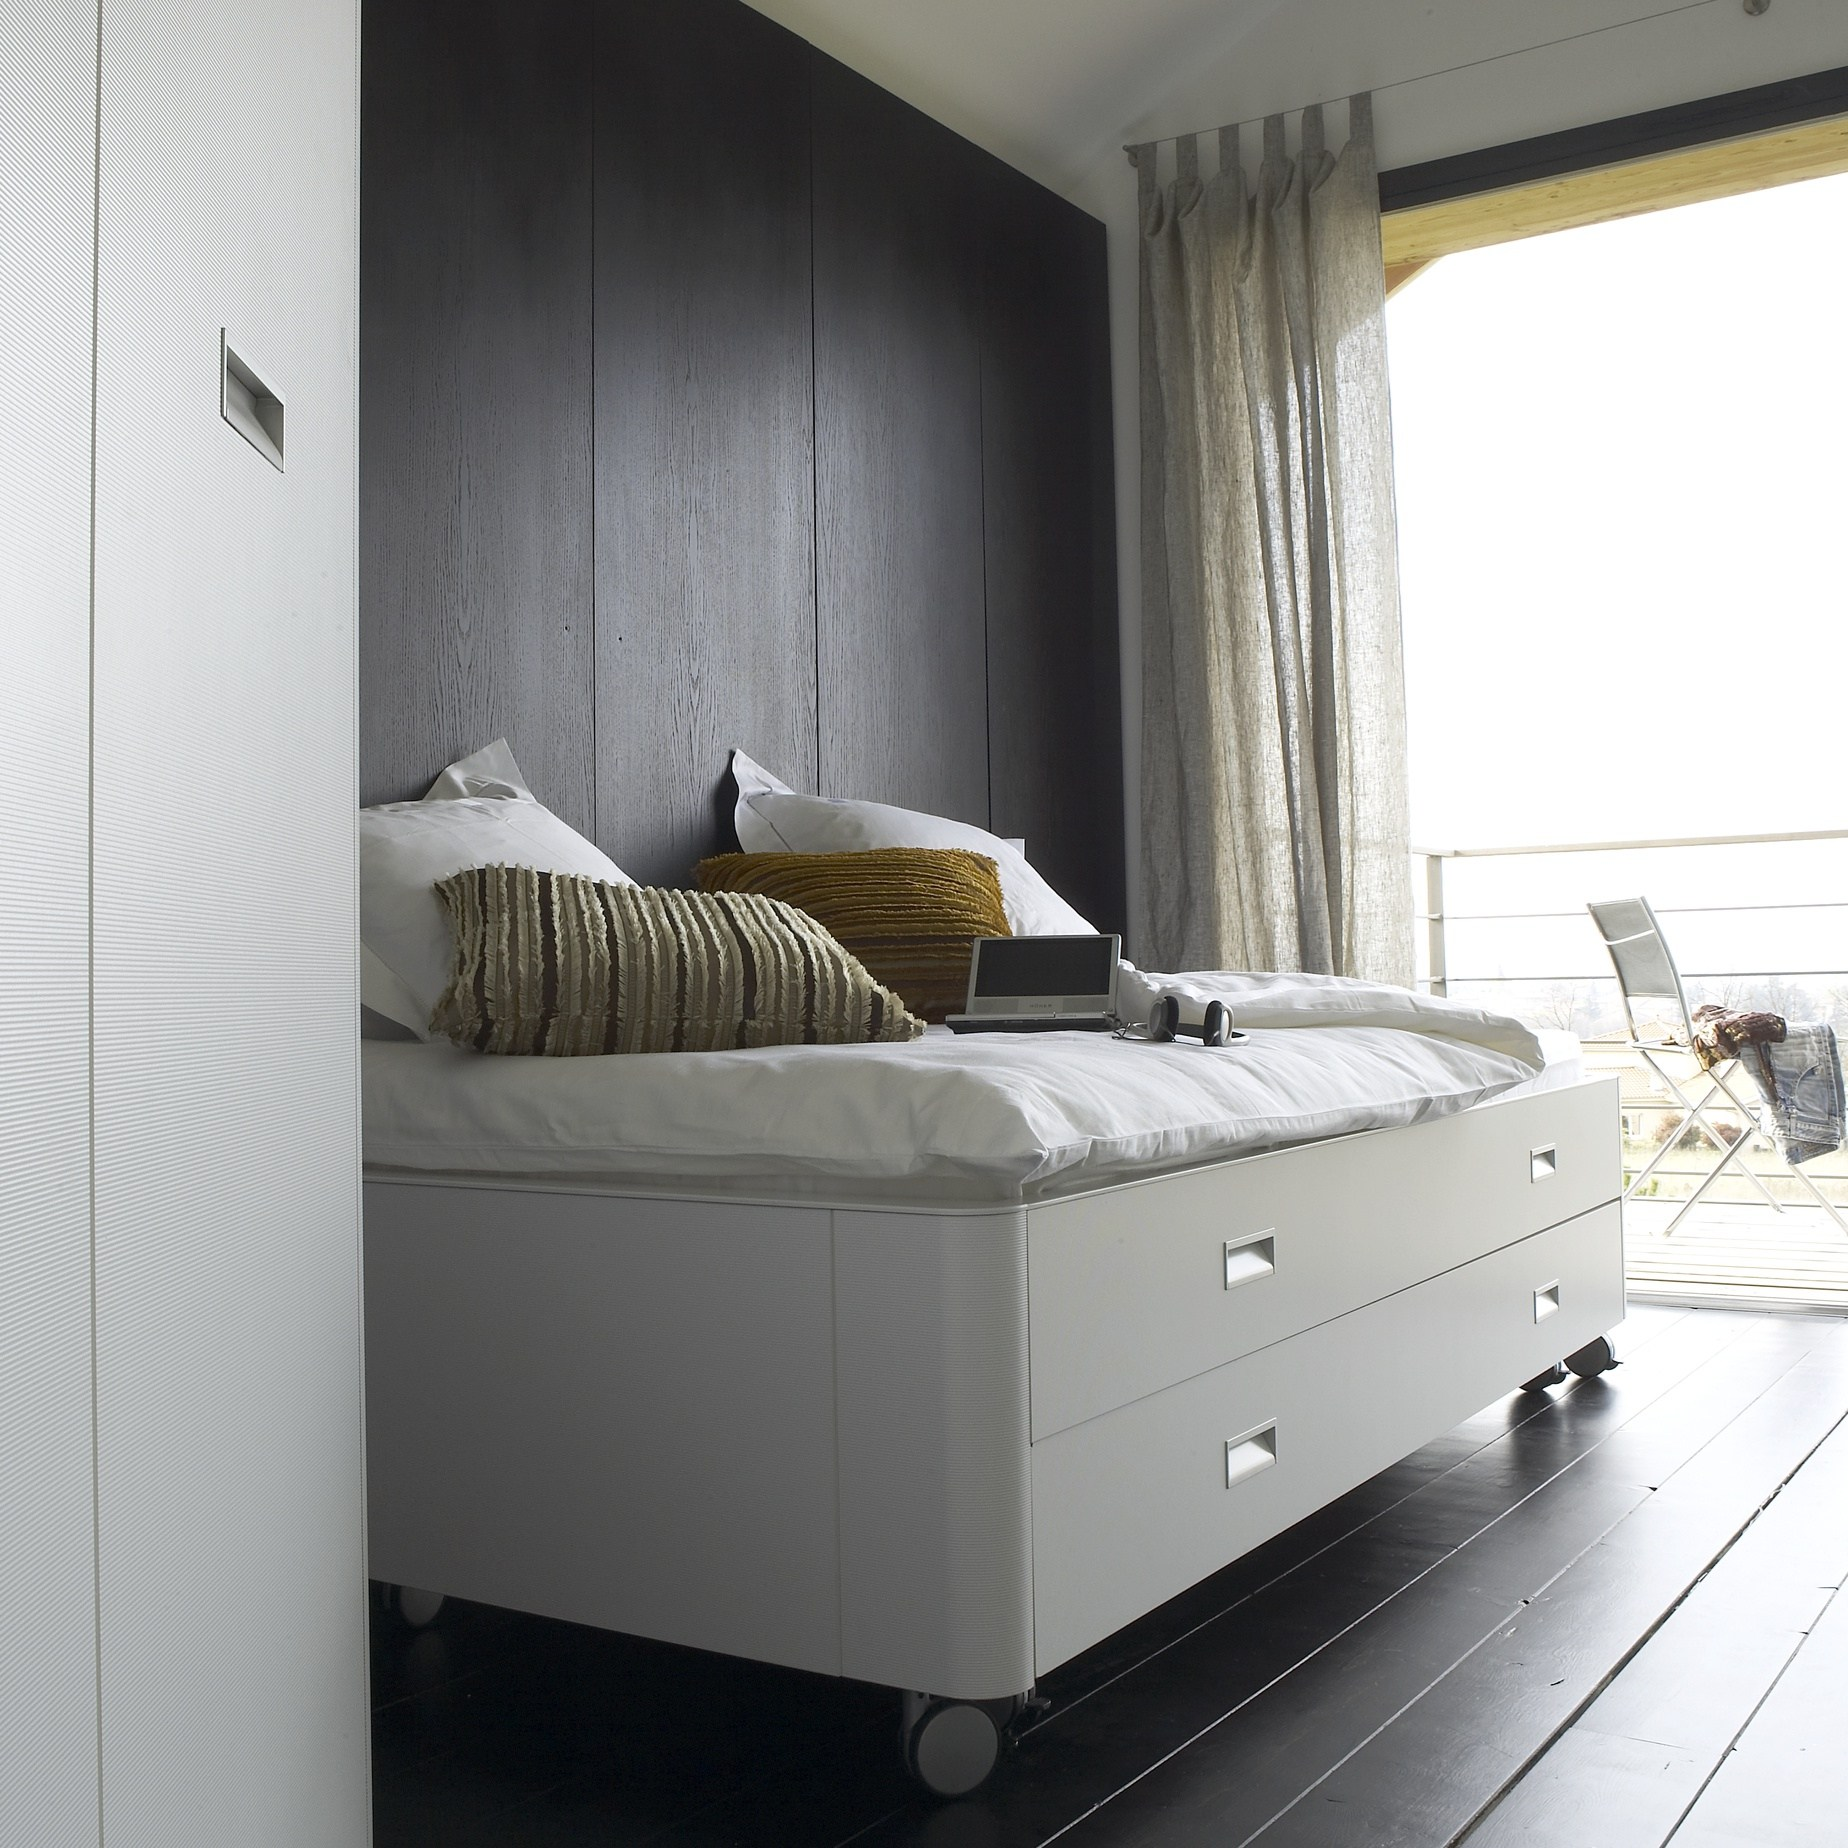 storage bed travel studio by roset italia design pagnon et pelha tre design. Black Bedroom Furniture Sets. Home Design Ideas